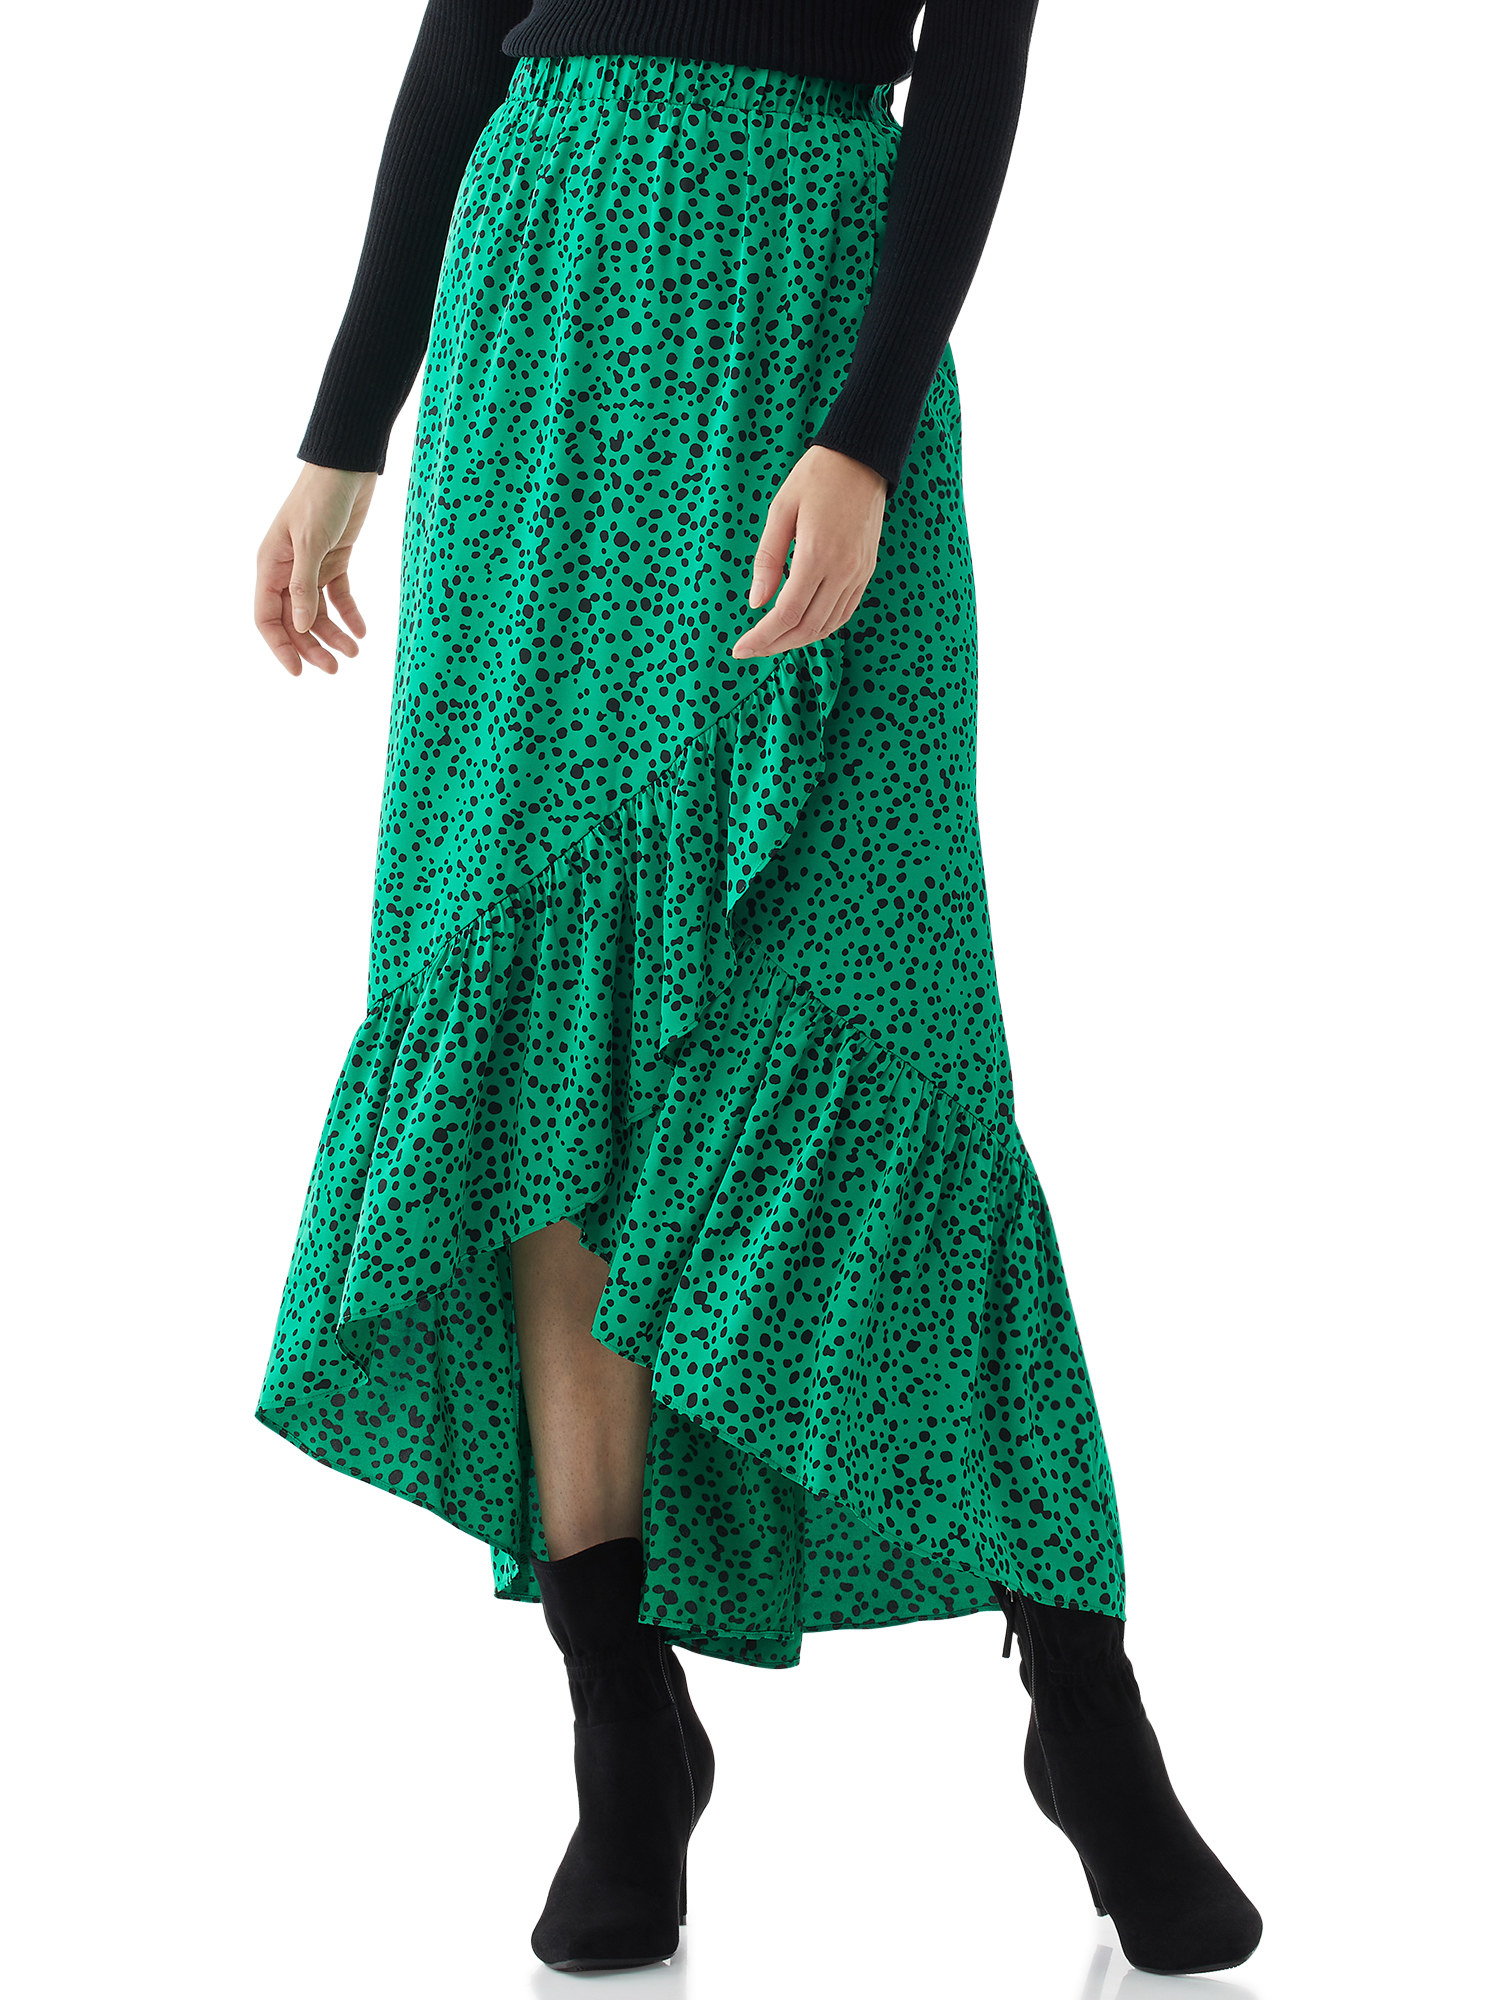 Model in the green and black dotted dress